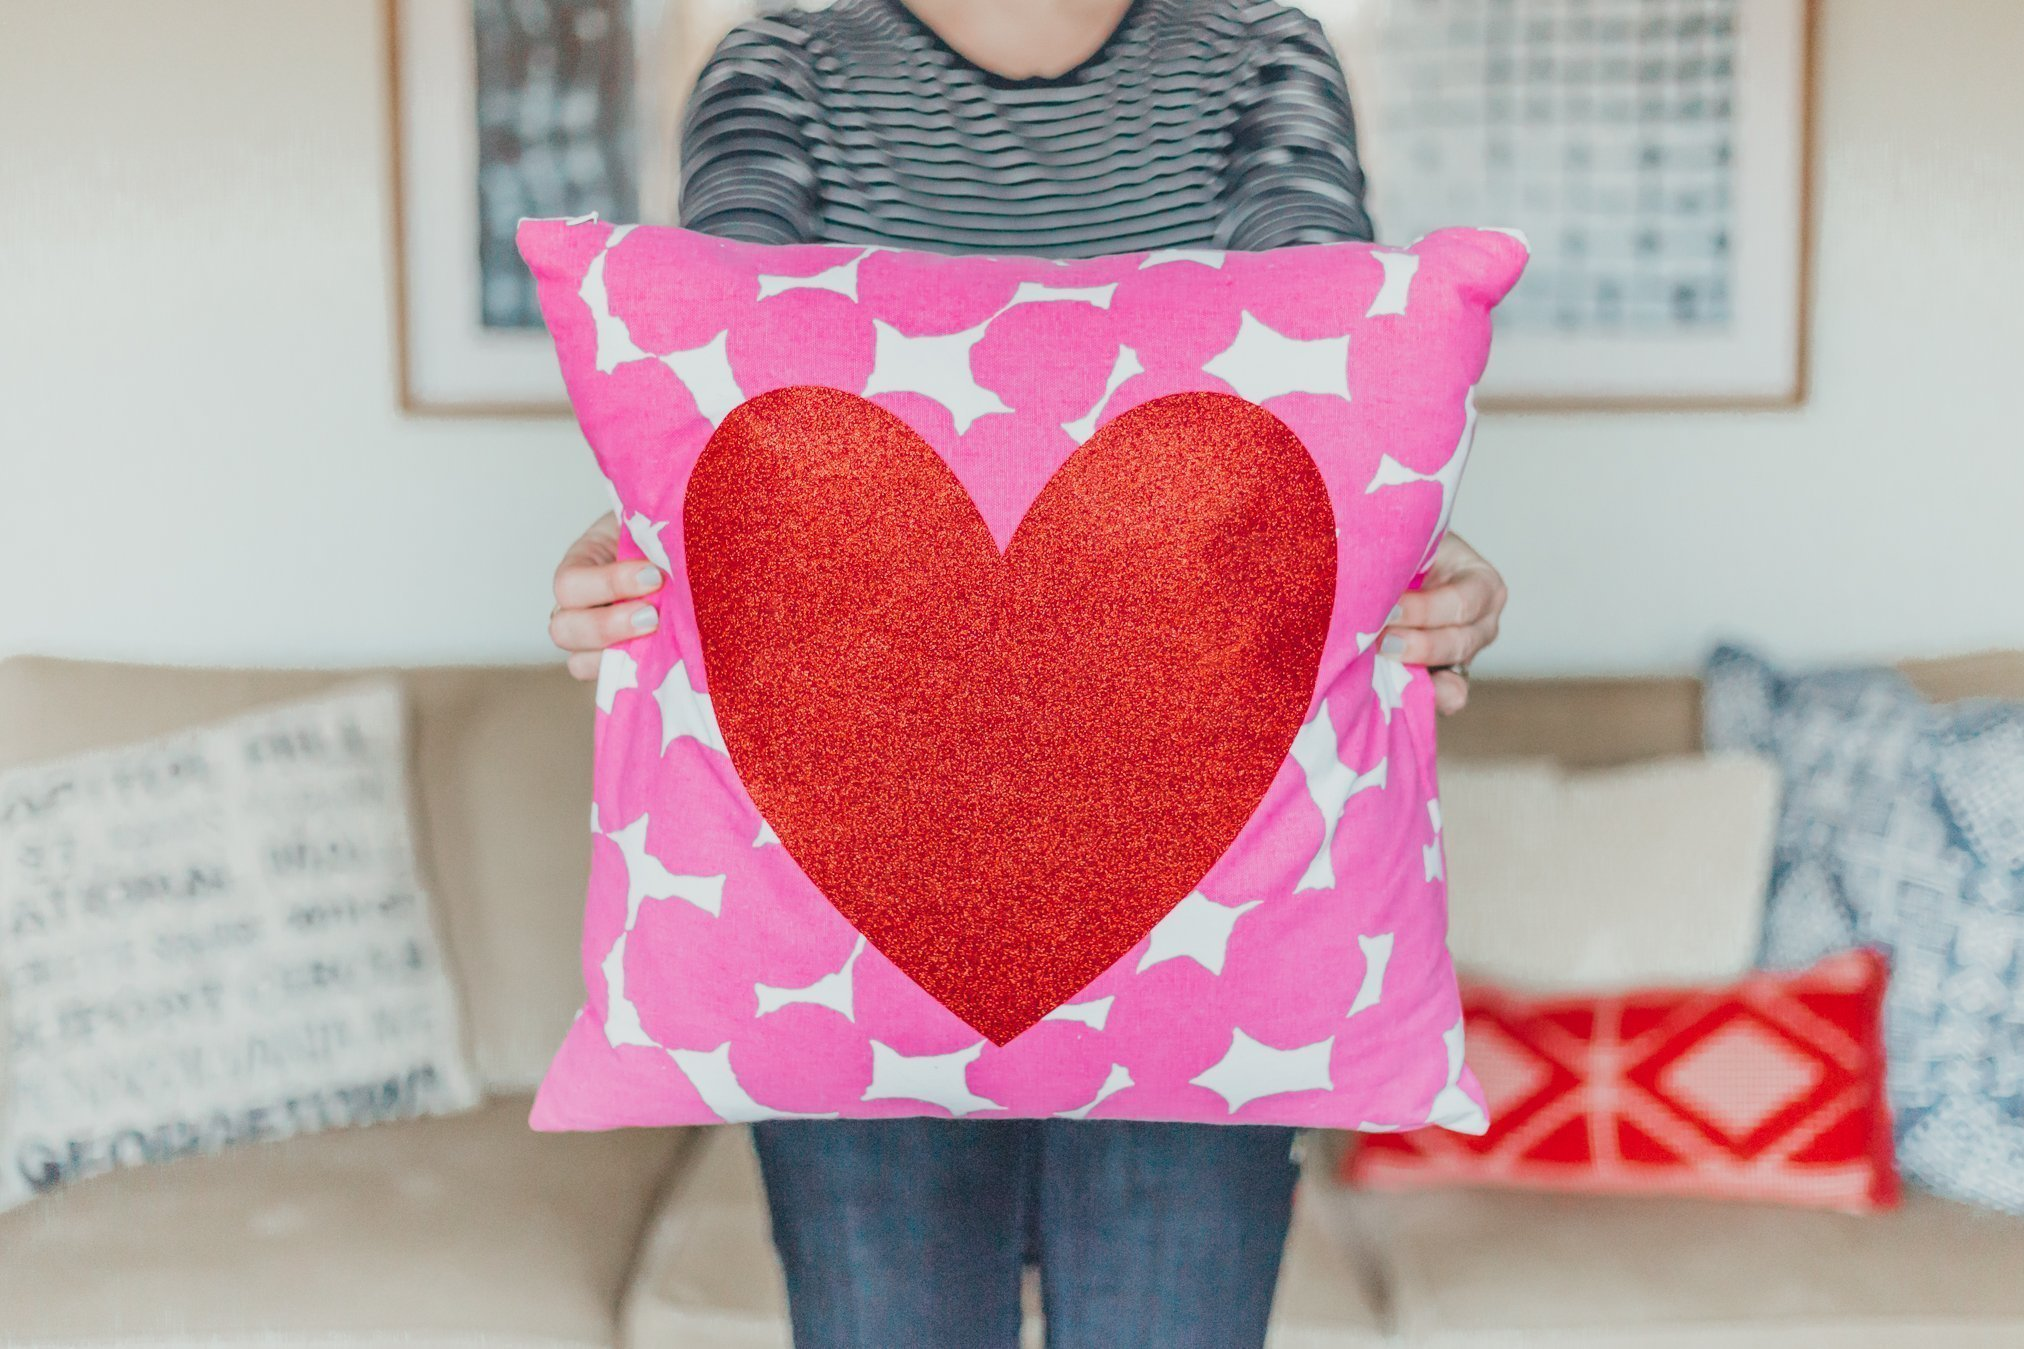 woman holding Valentine's Day pillow